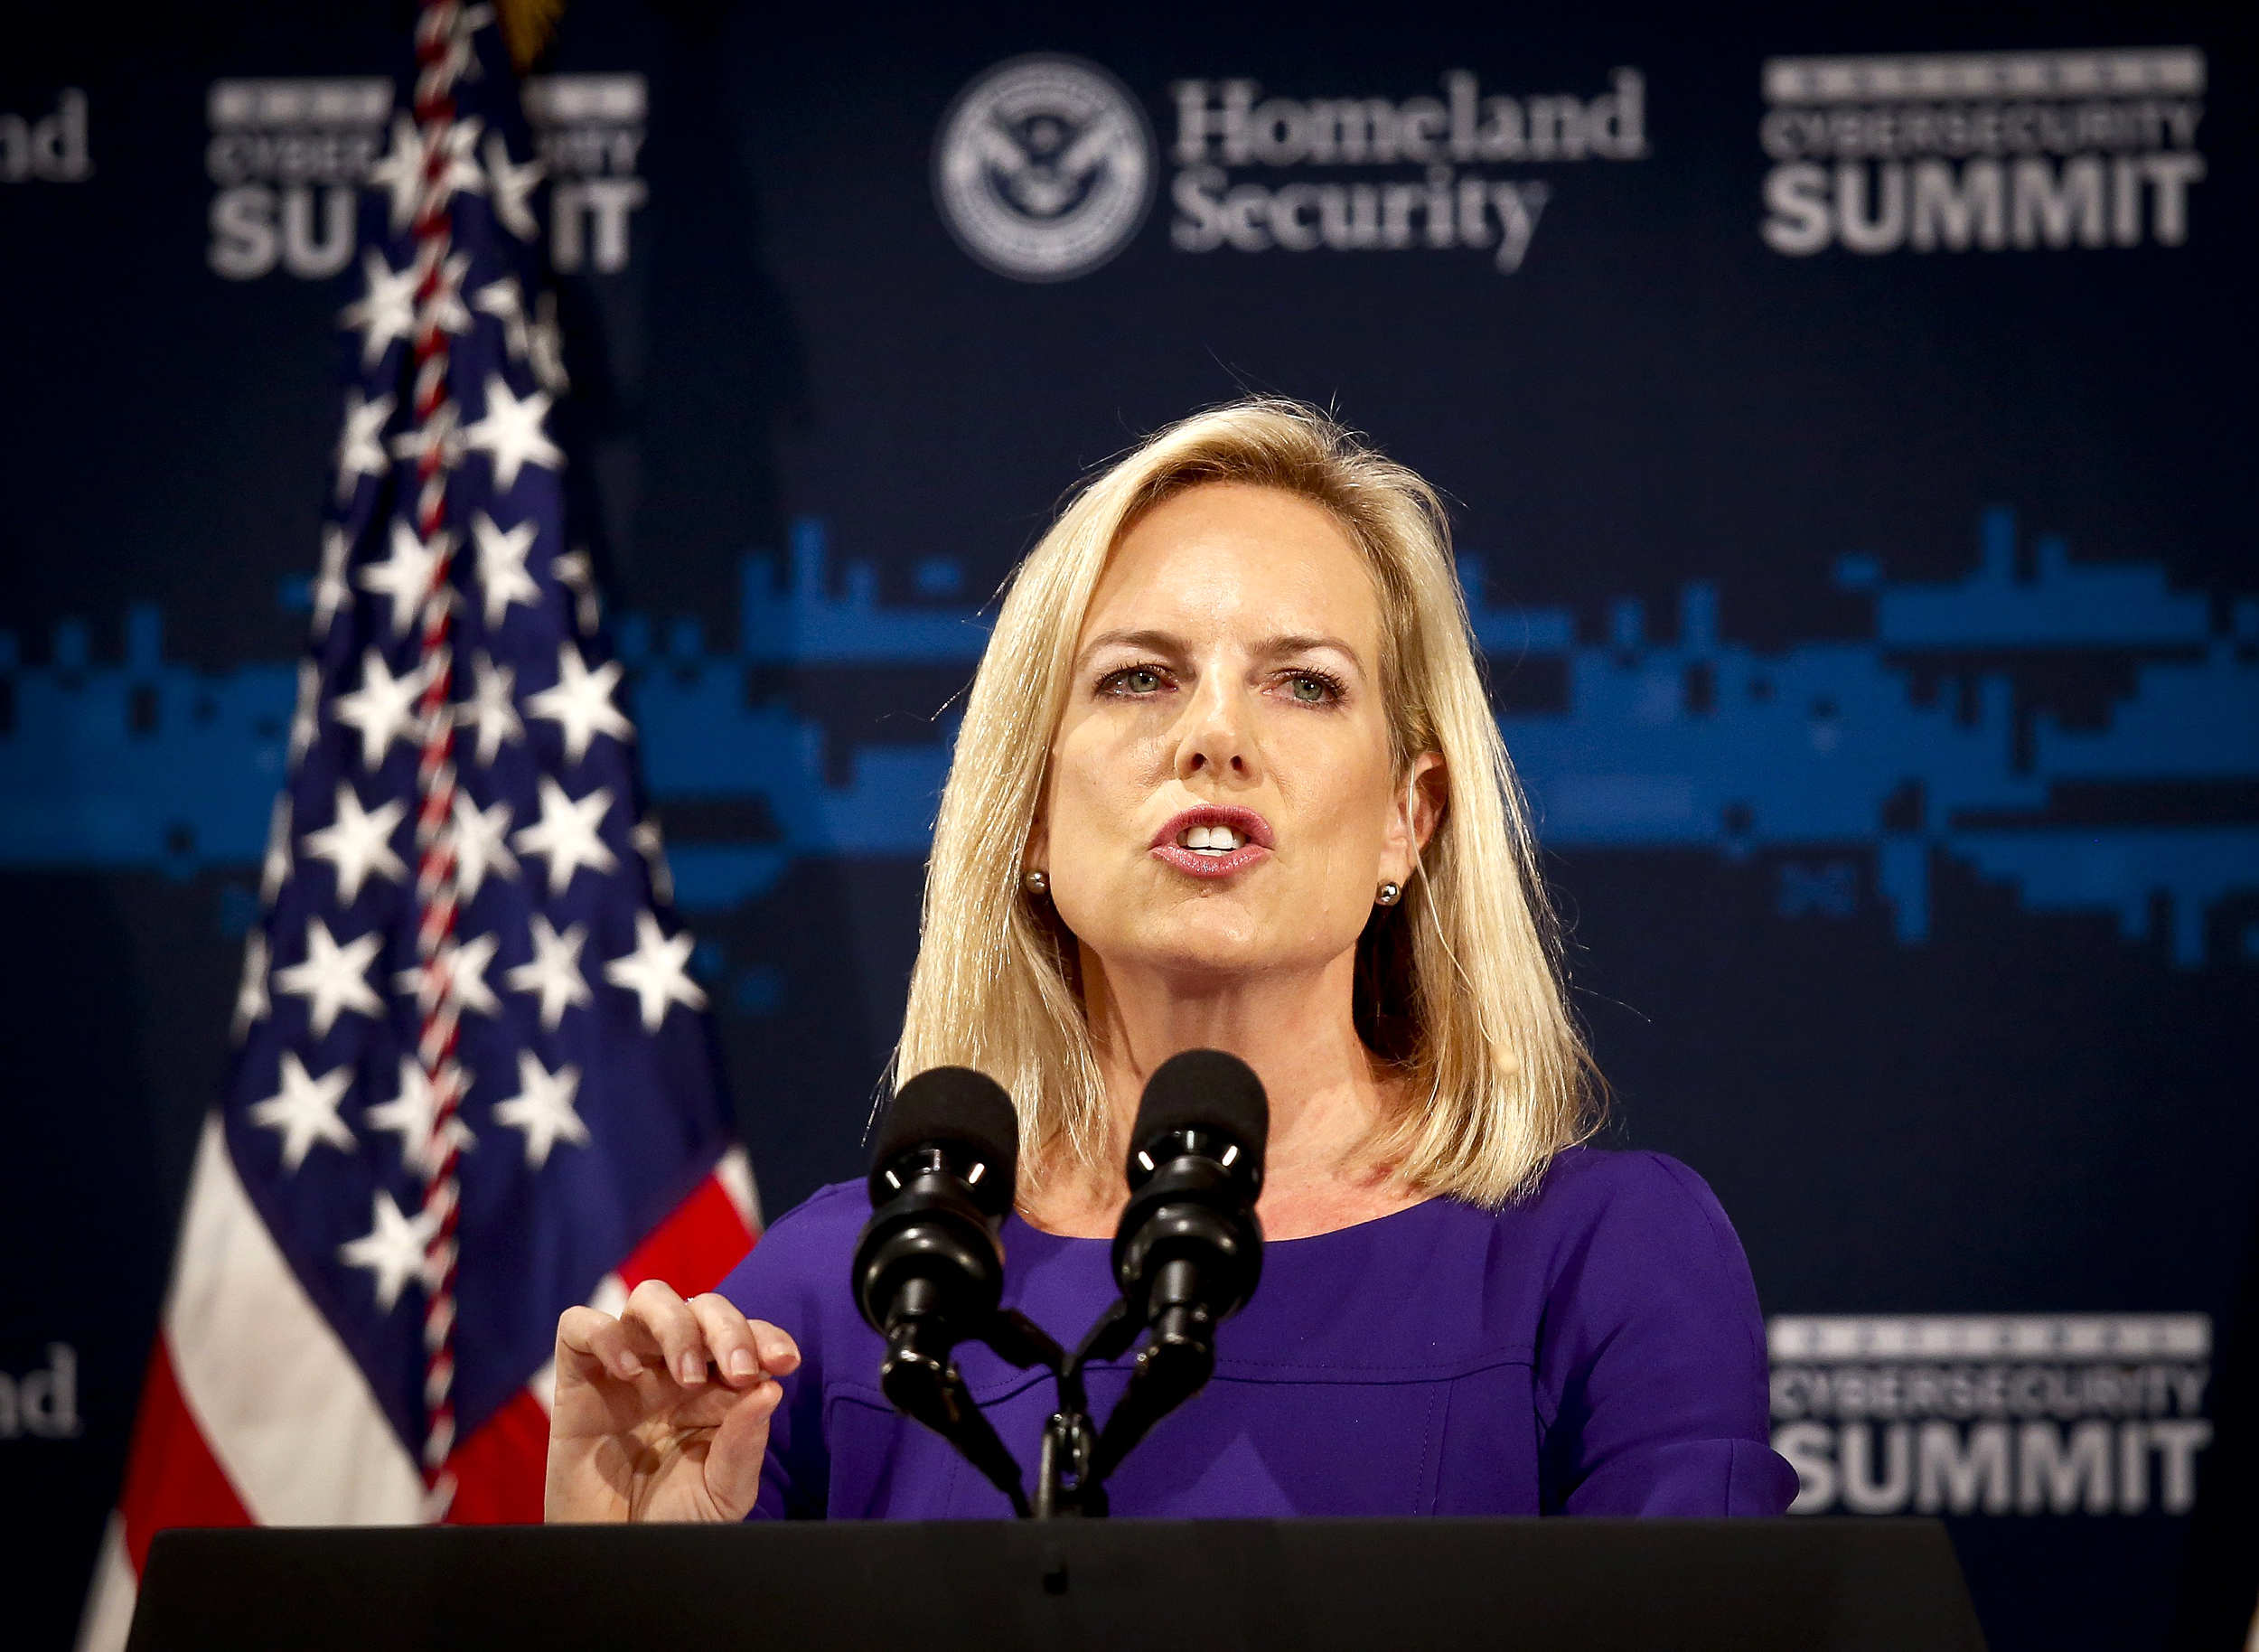 DHS finds increasing attempts to hack U.S. election systems ahead of midterms